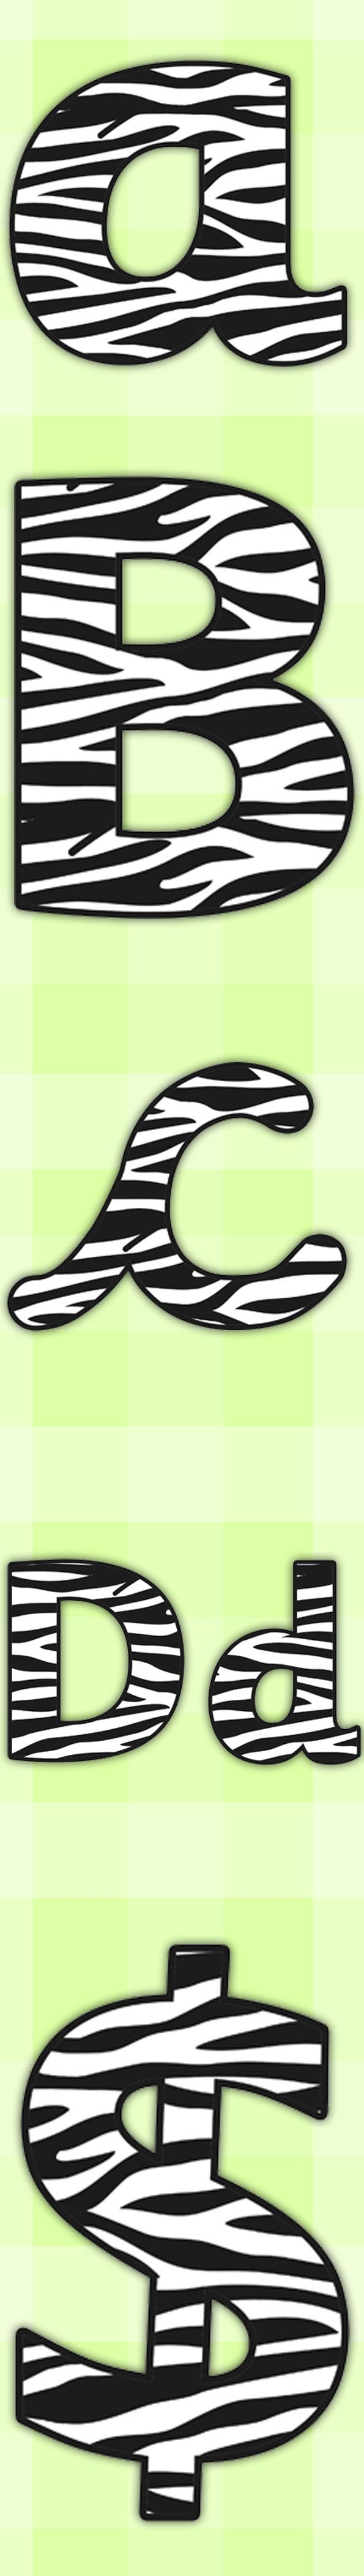 Best images about zebra theme on pinterest